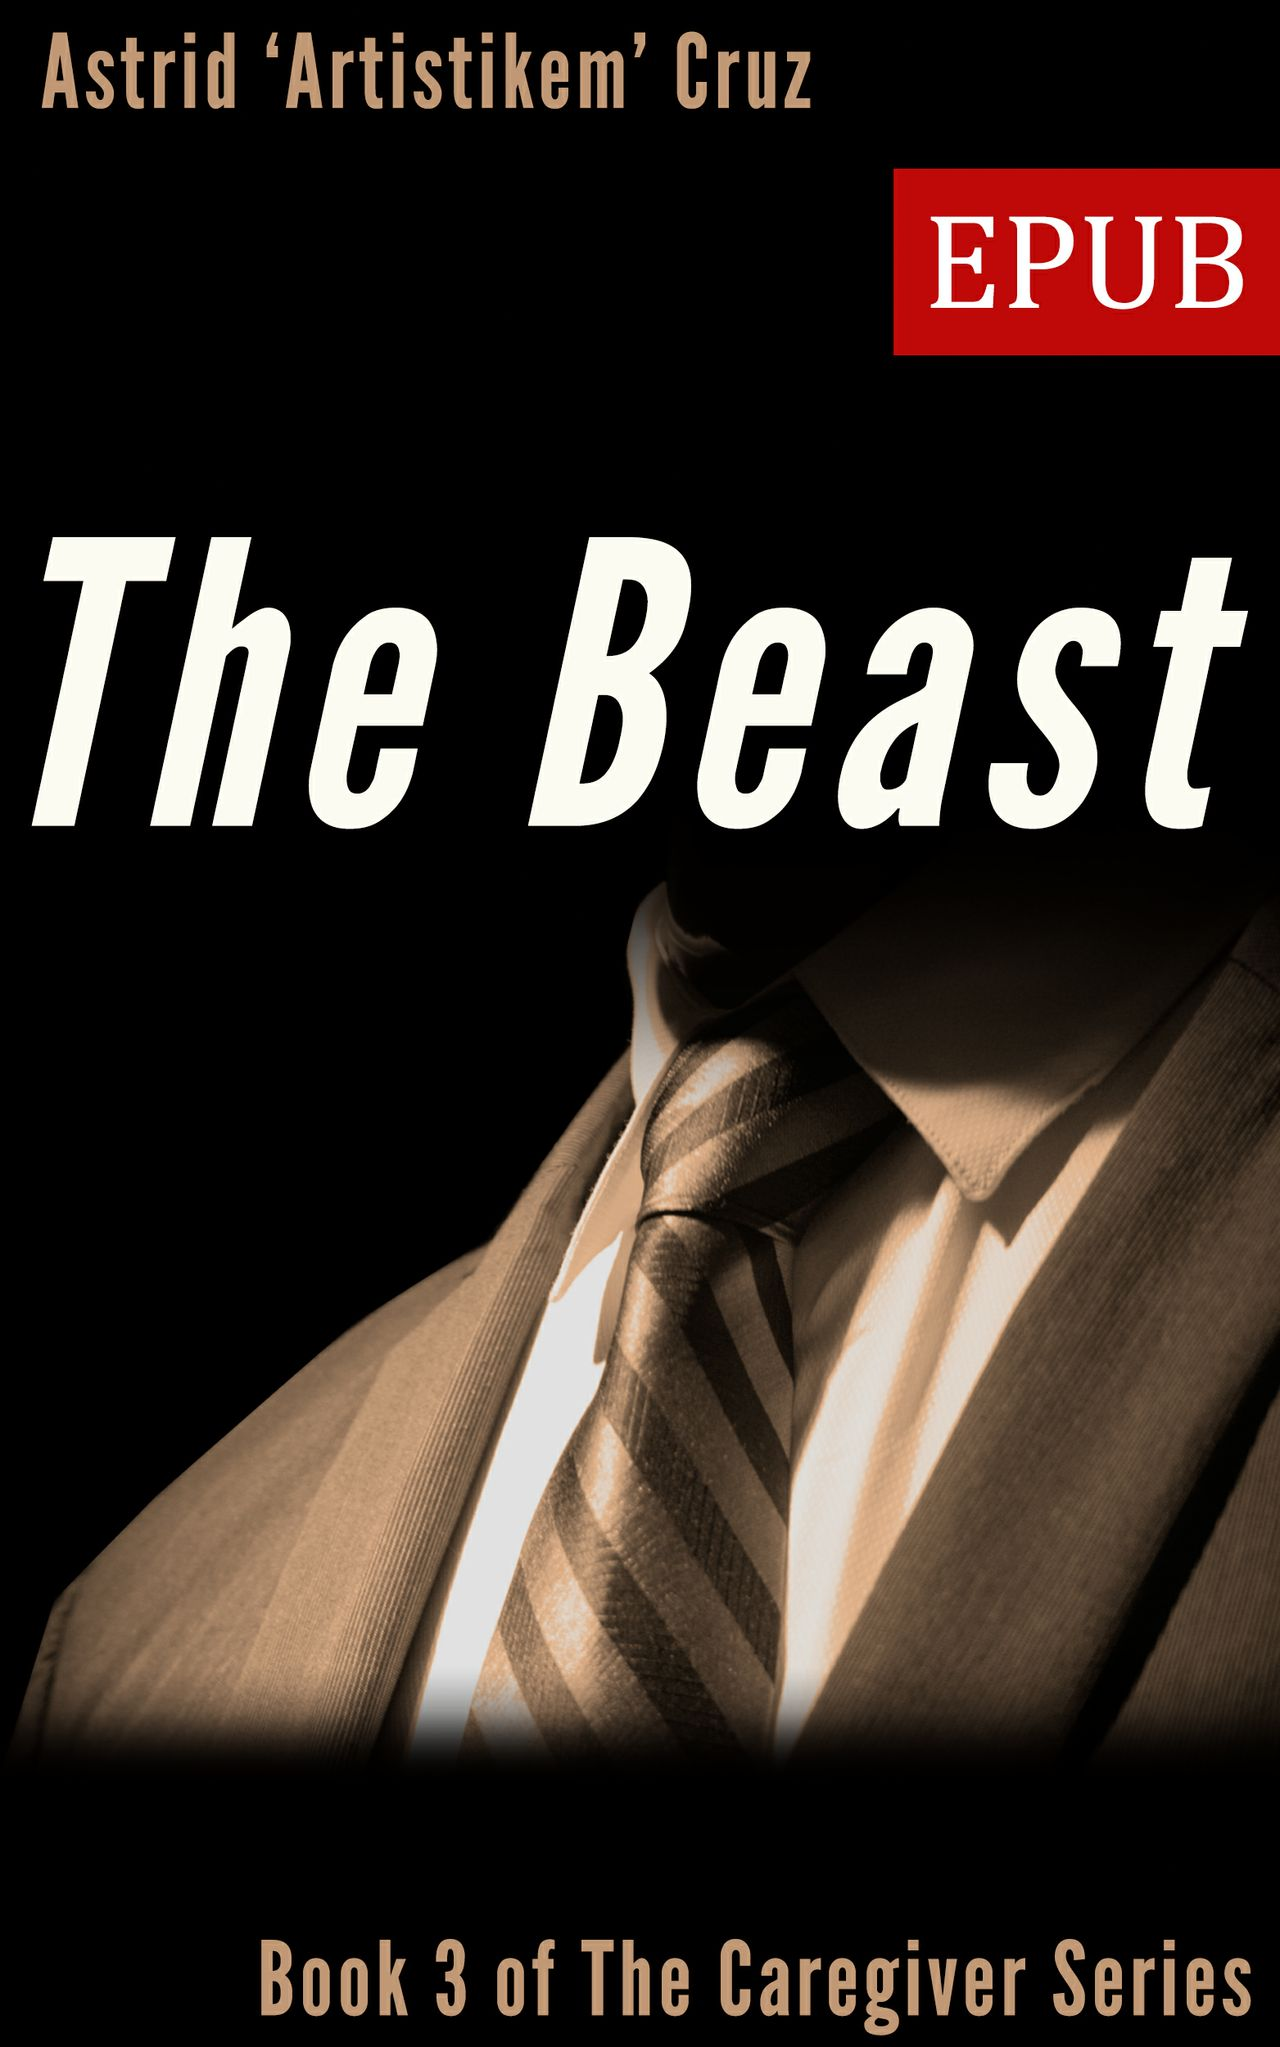 The Beast (Book 3 of The Caregiver Series) - ePub